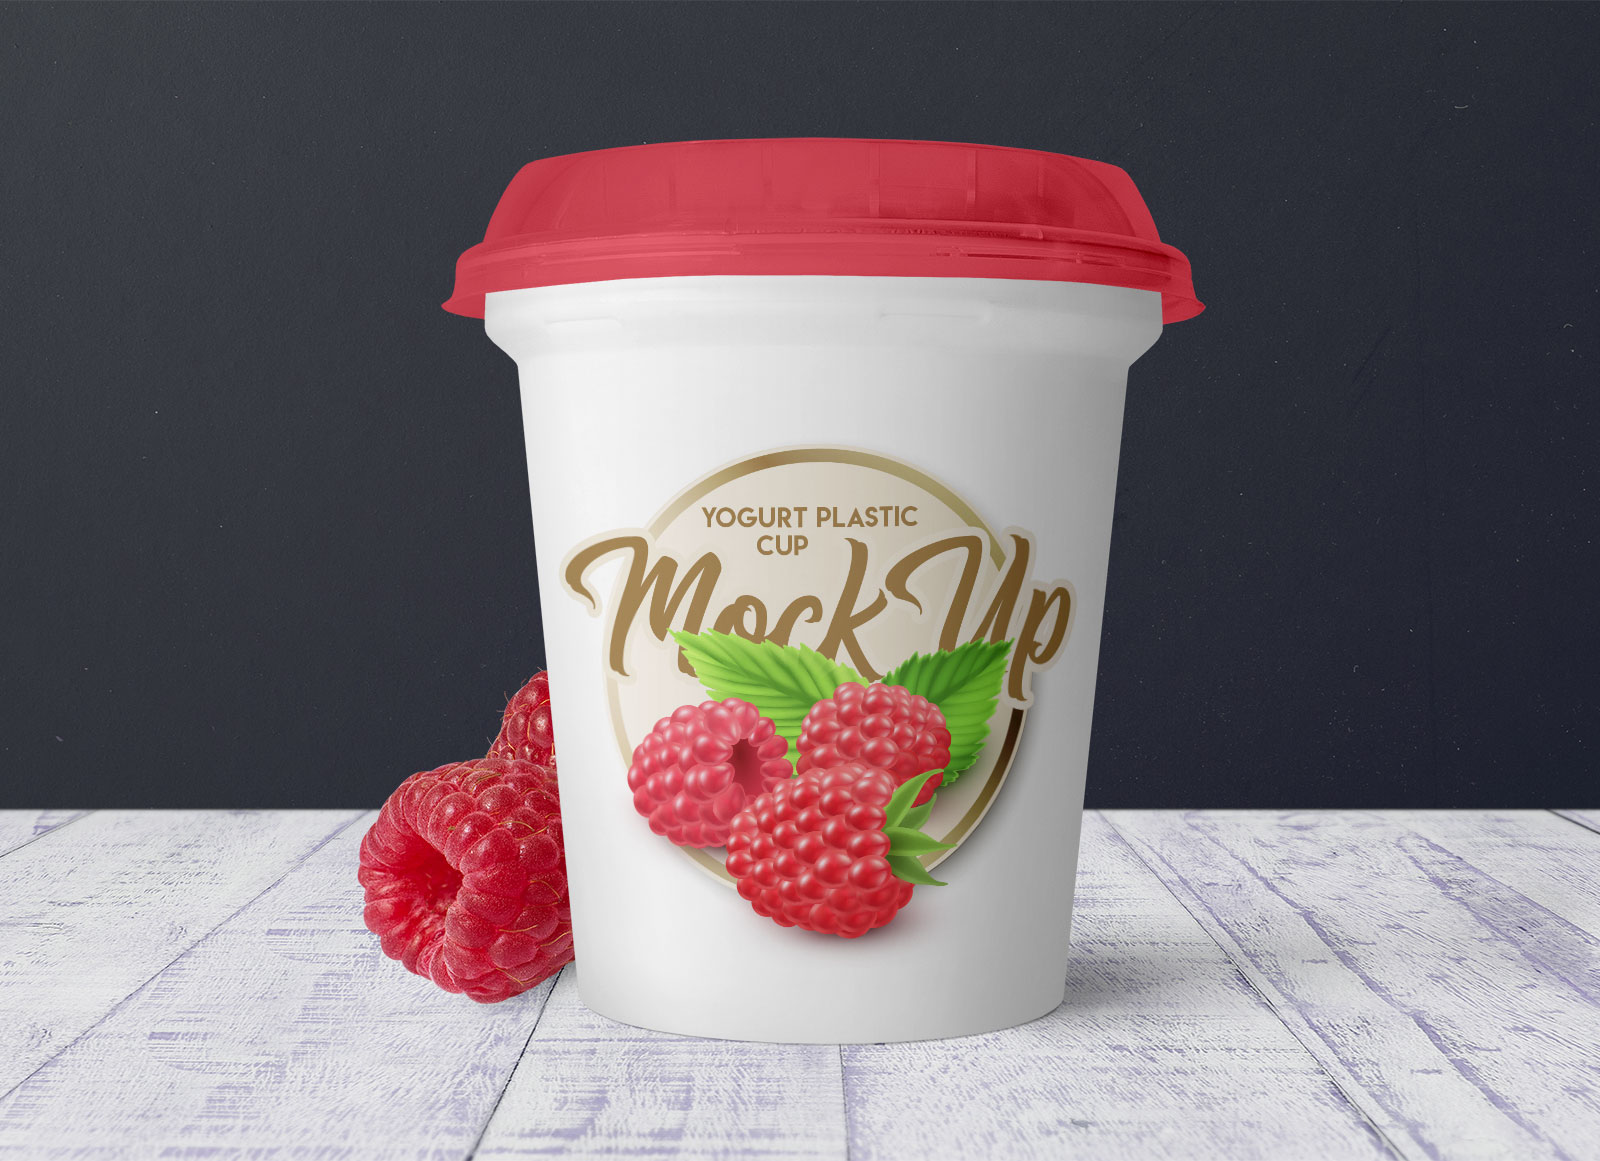 Free-Yogurt-Cup-Ice-Cream-Packaging-Mockup-PSD